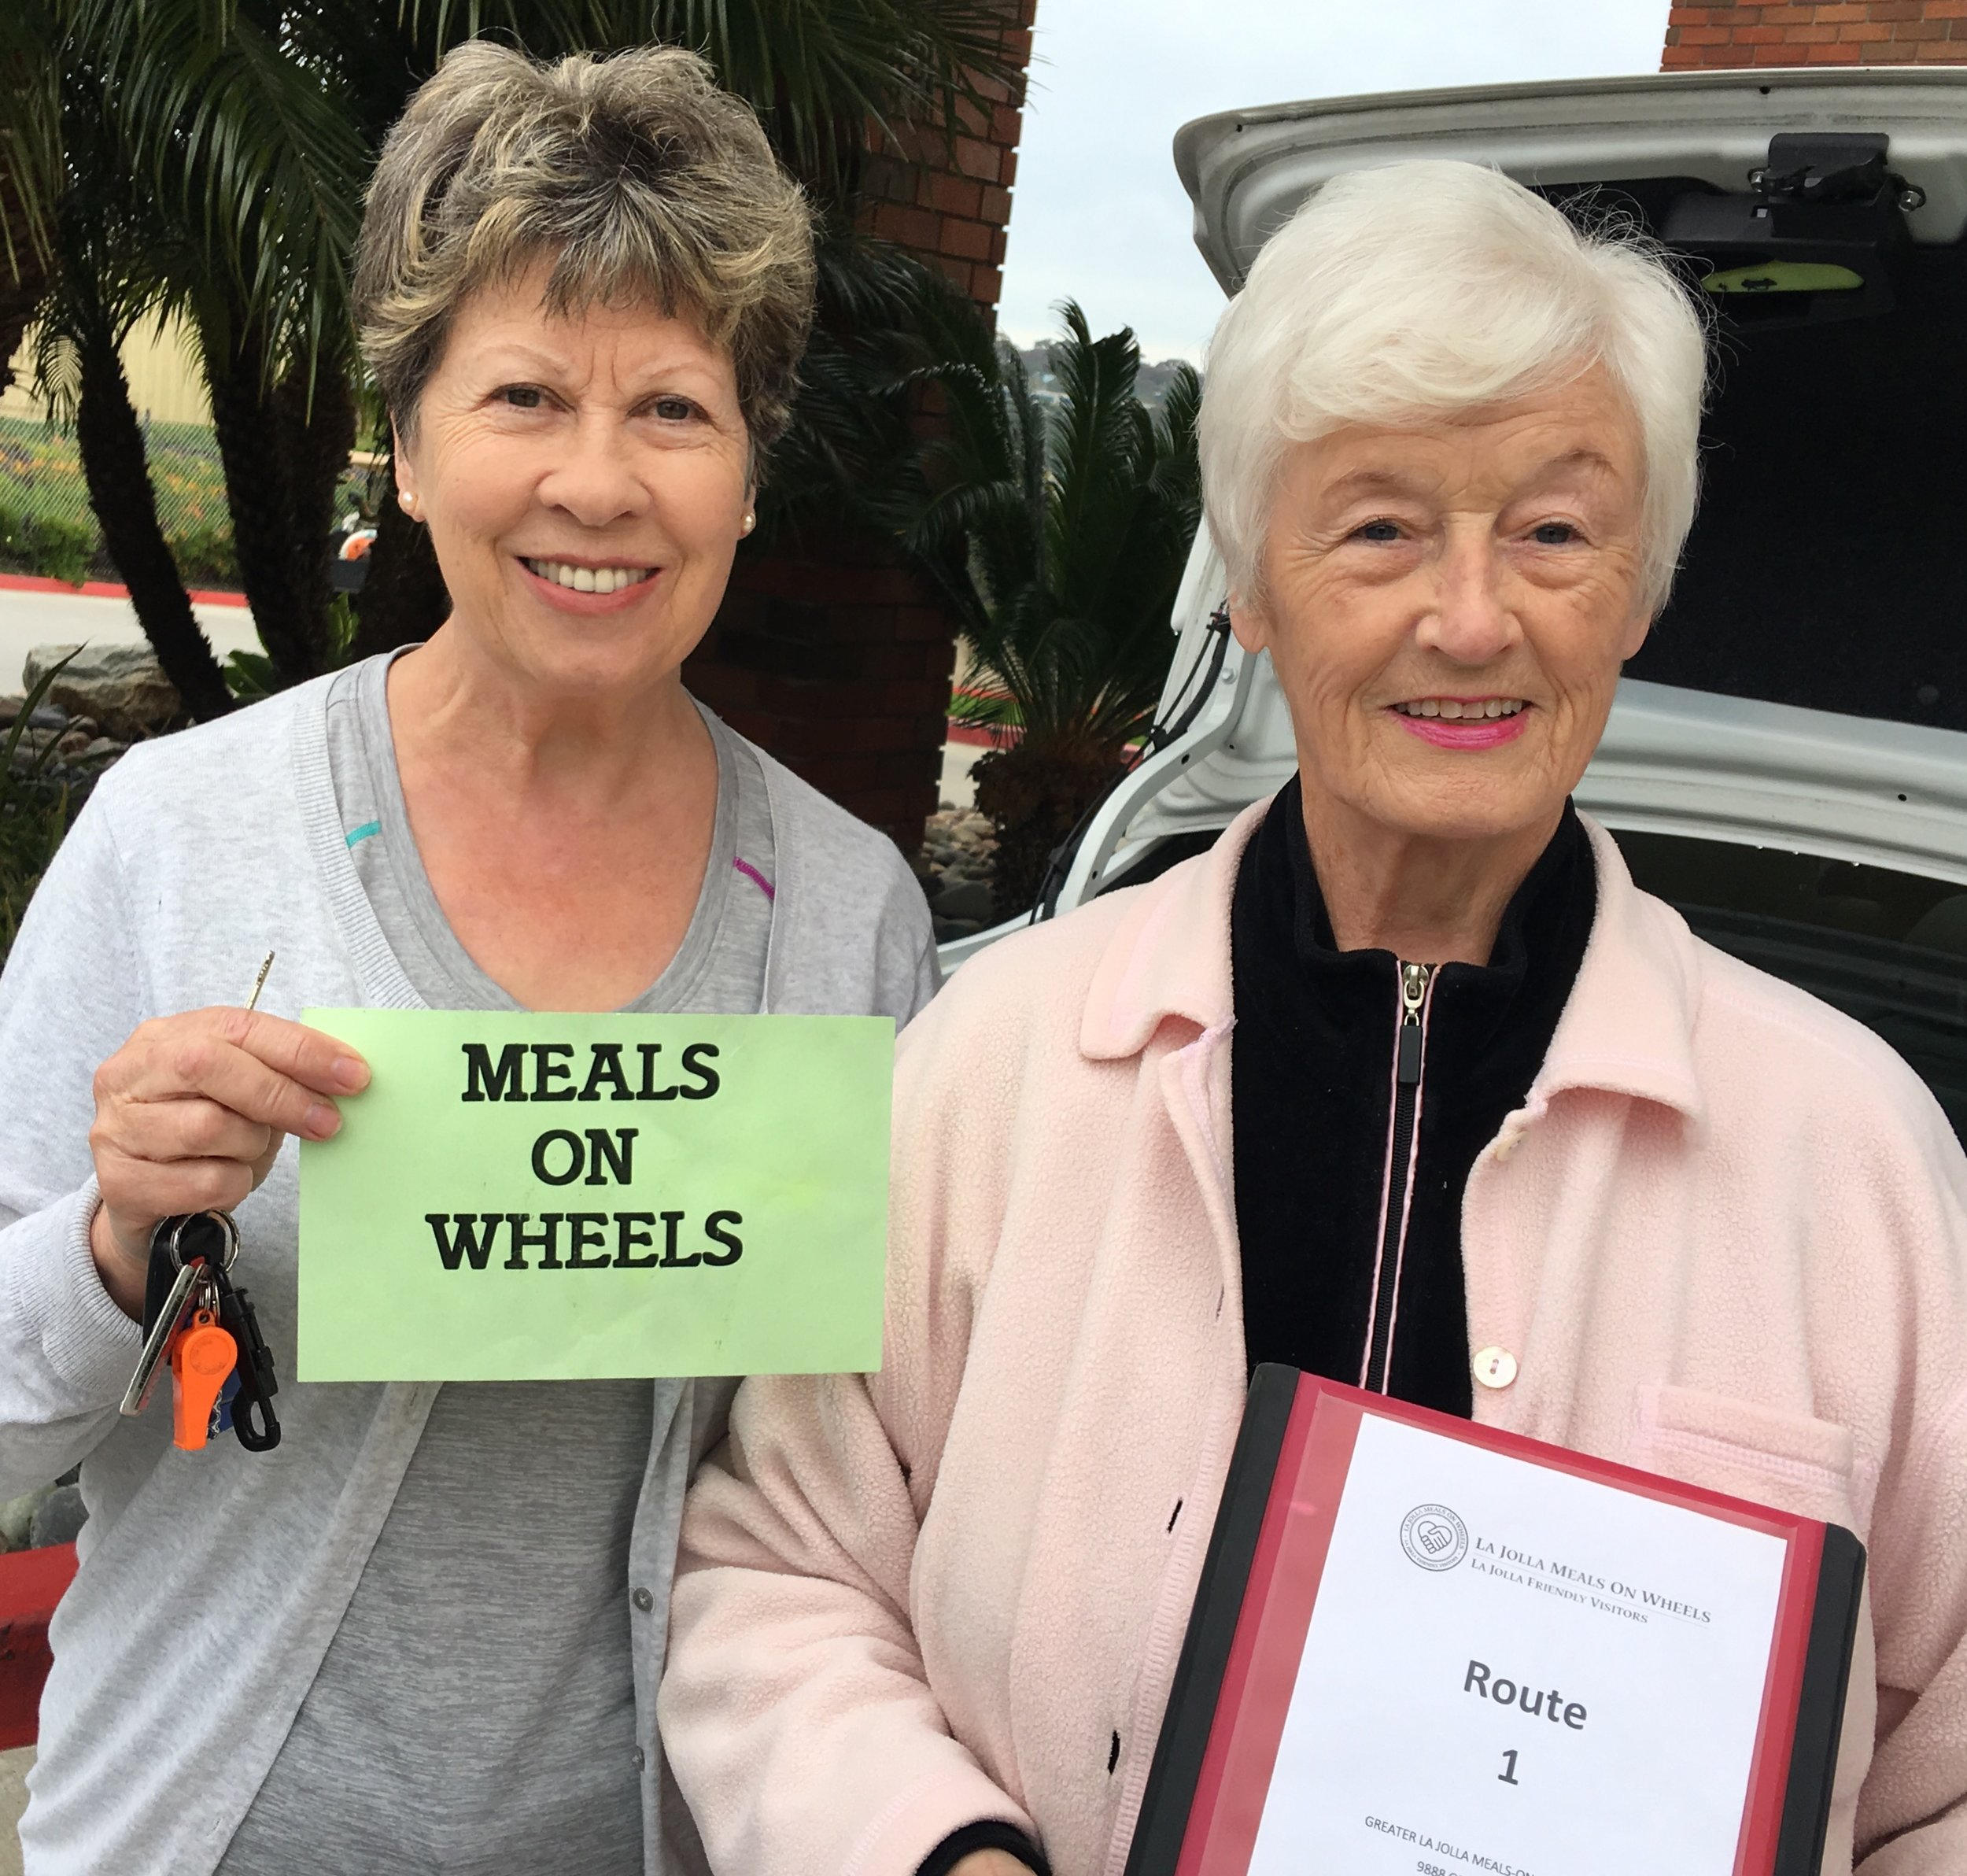 Get Involved - Interested in making a difference in your community?More than 60% of our volunteers have worked with La Jolla Meals On Wheels over 10 years and several have received their 25-year pins!